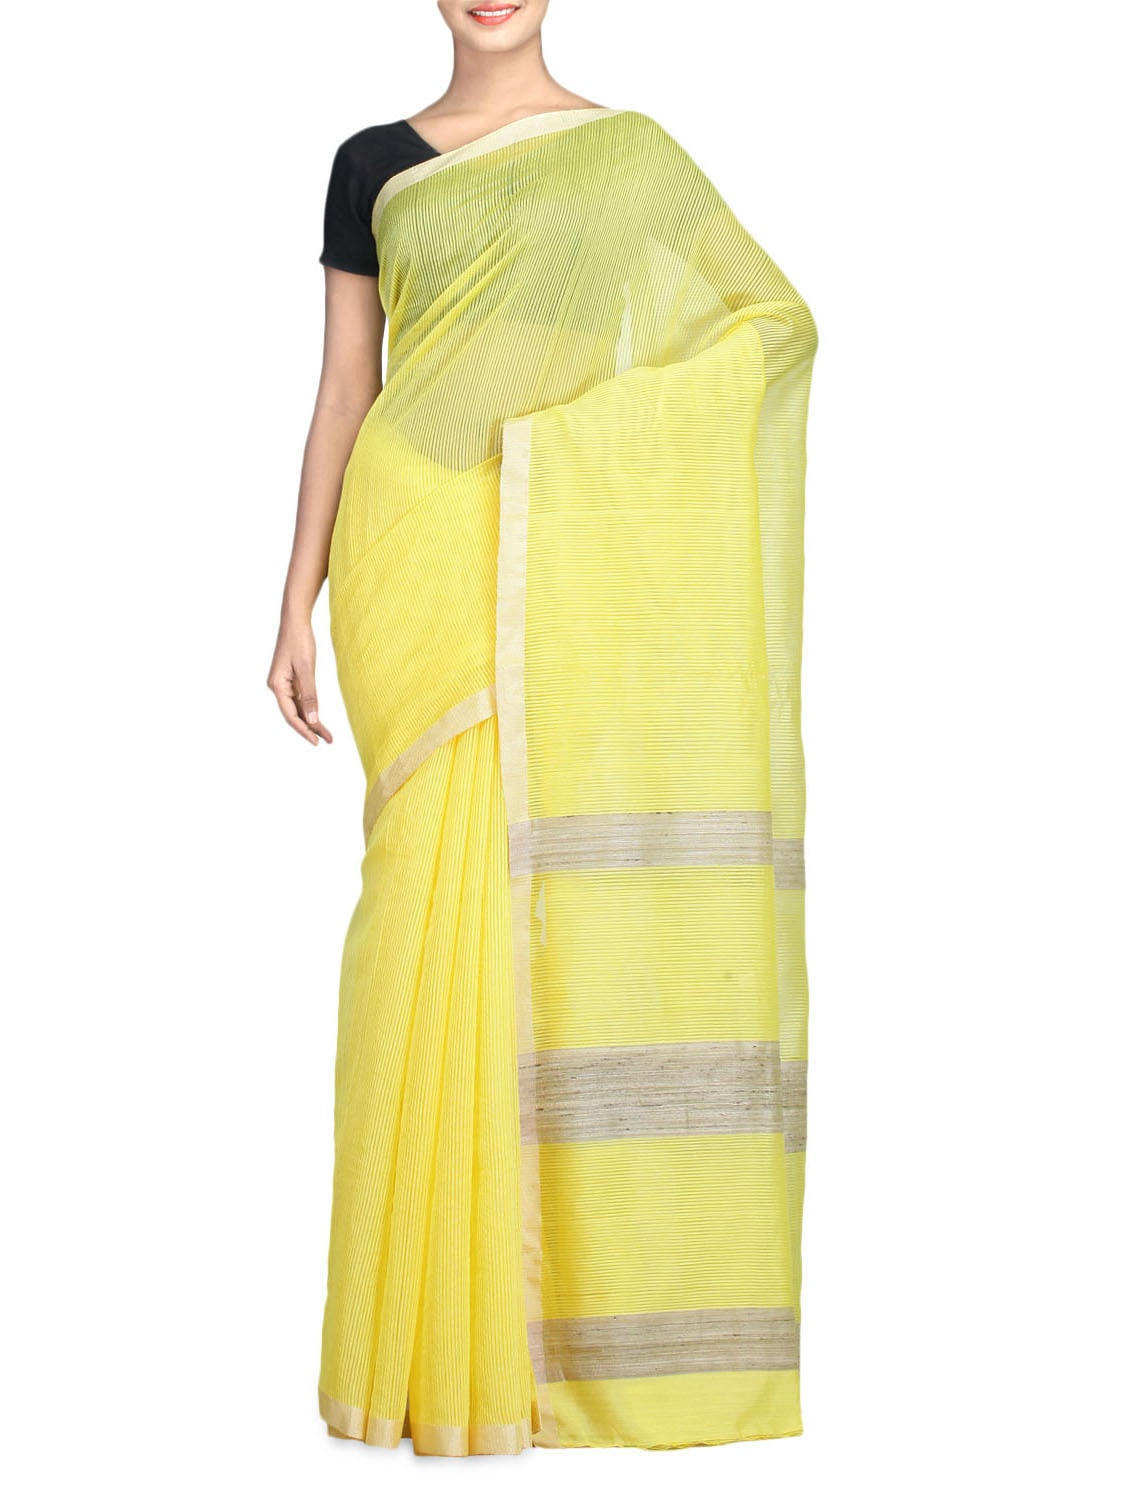 Yellow Color Art Silk Ghicha Viscose Saree - By